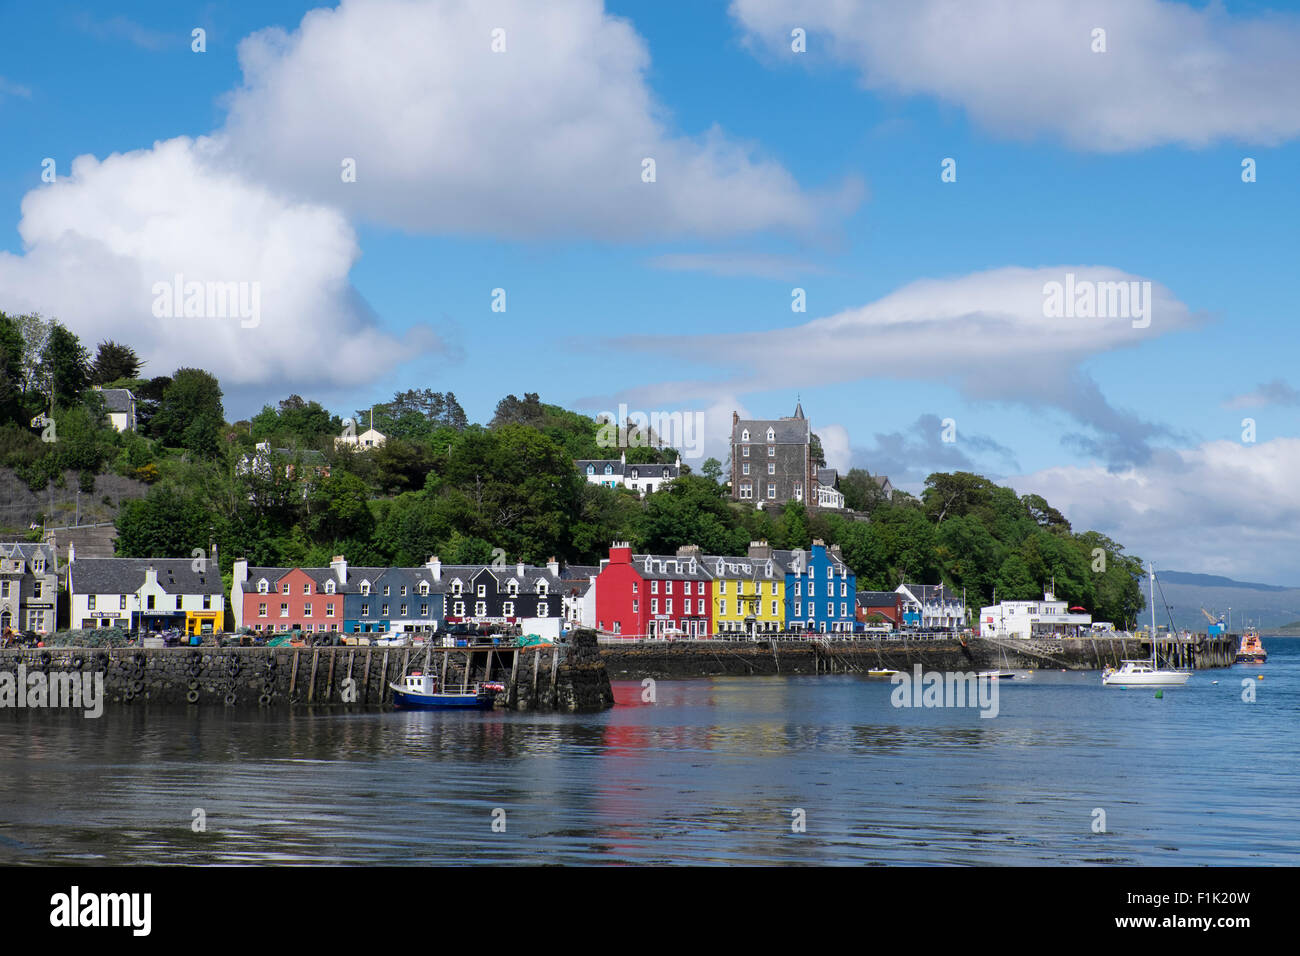 Tobermory - harbour side buildings Isle of Mull Scotland, UK LA007535 - Stock Image